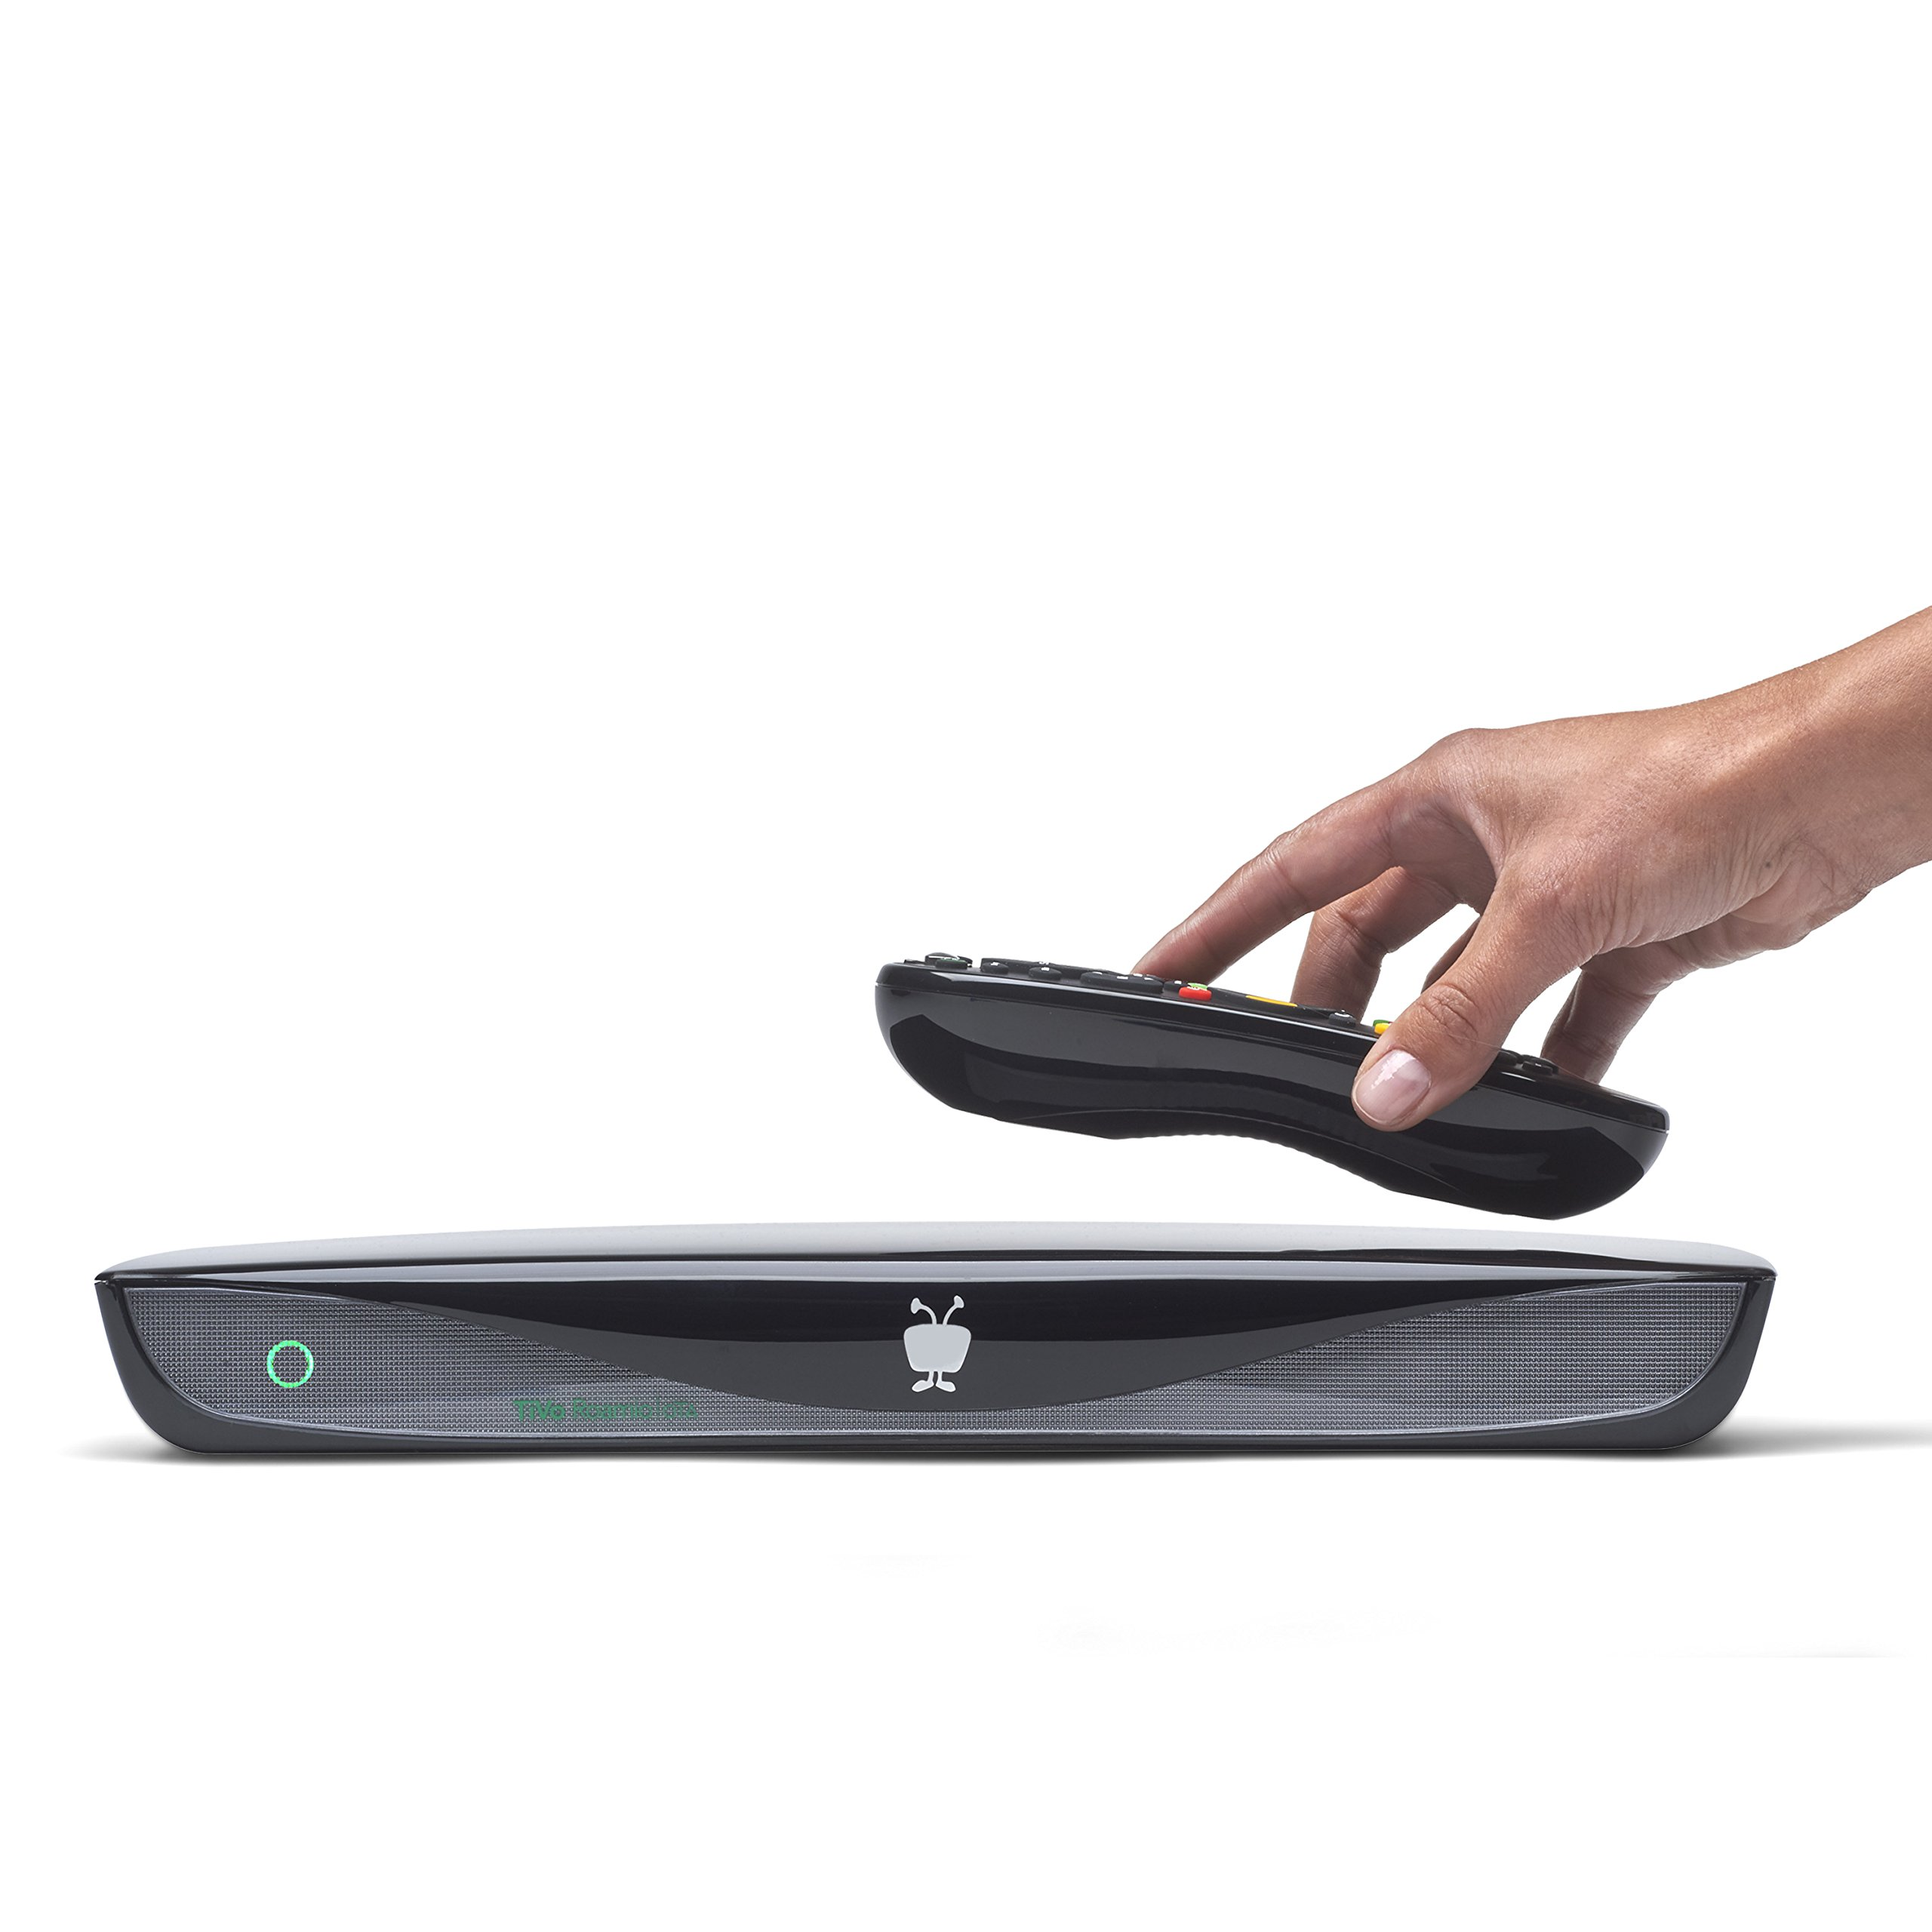 TiVo Roamio OTA 1 TB DVR - With No Monthly Service Fees - Digital Video Recorder and Streaming Media Player by TiVo